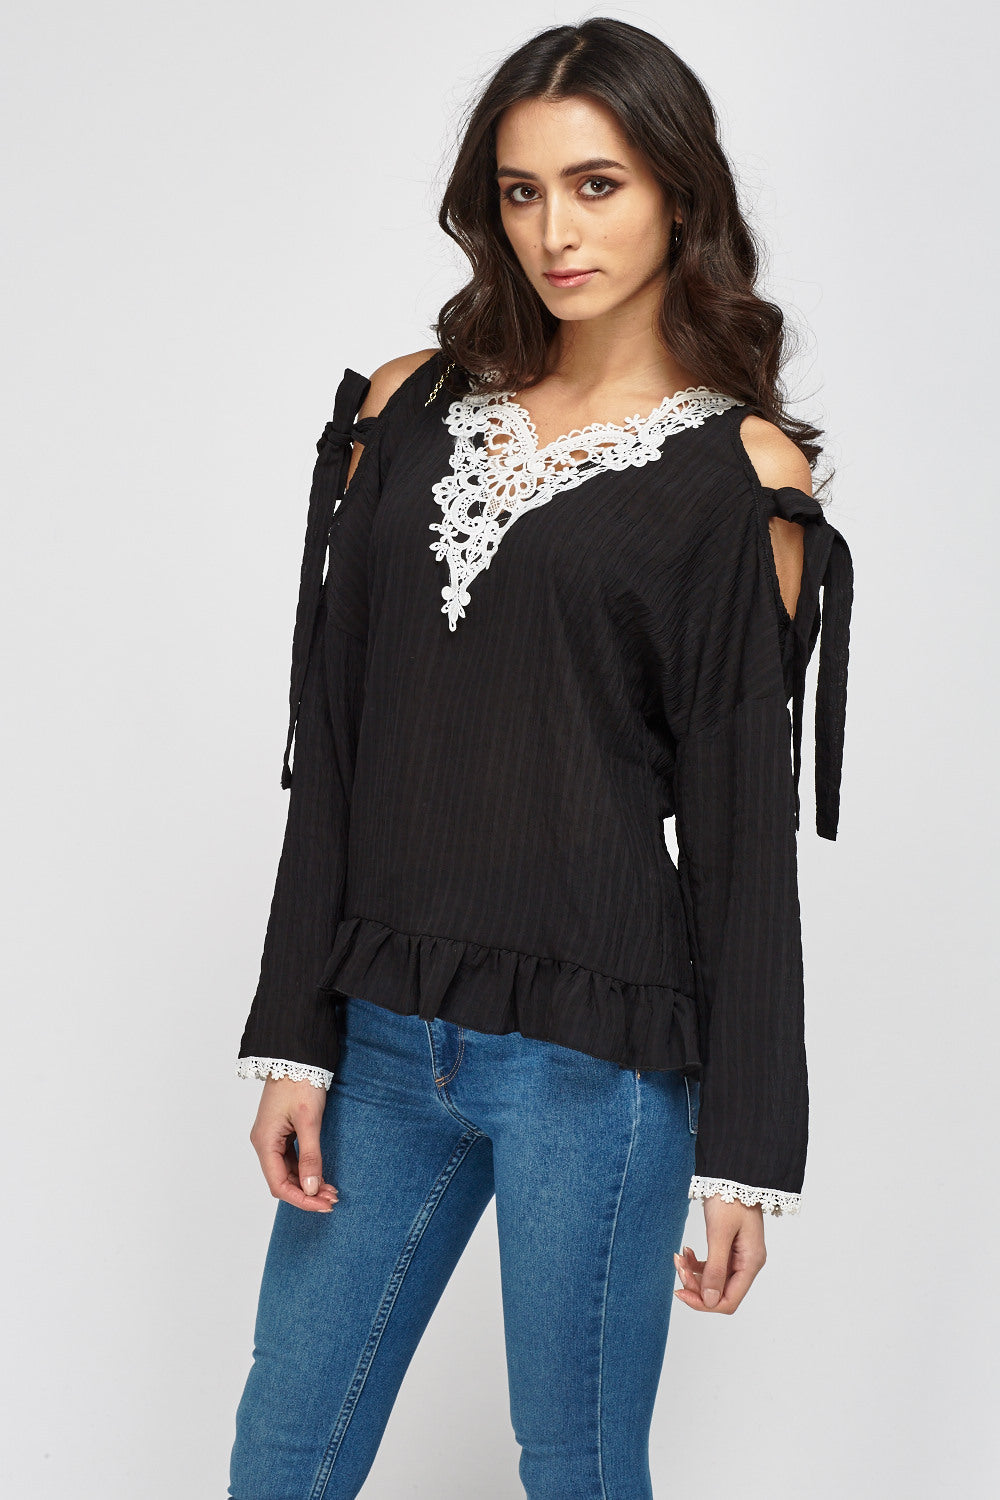 Top cold shoulder con detalle croché - MiTiendaSecreta